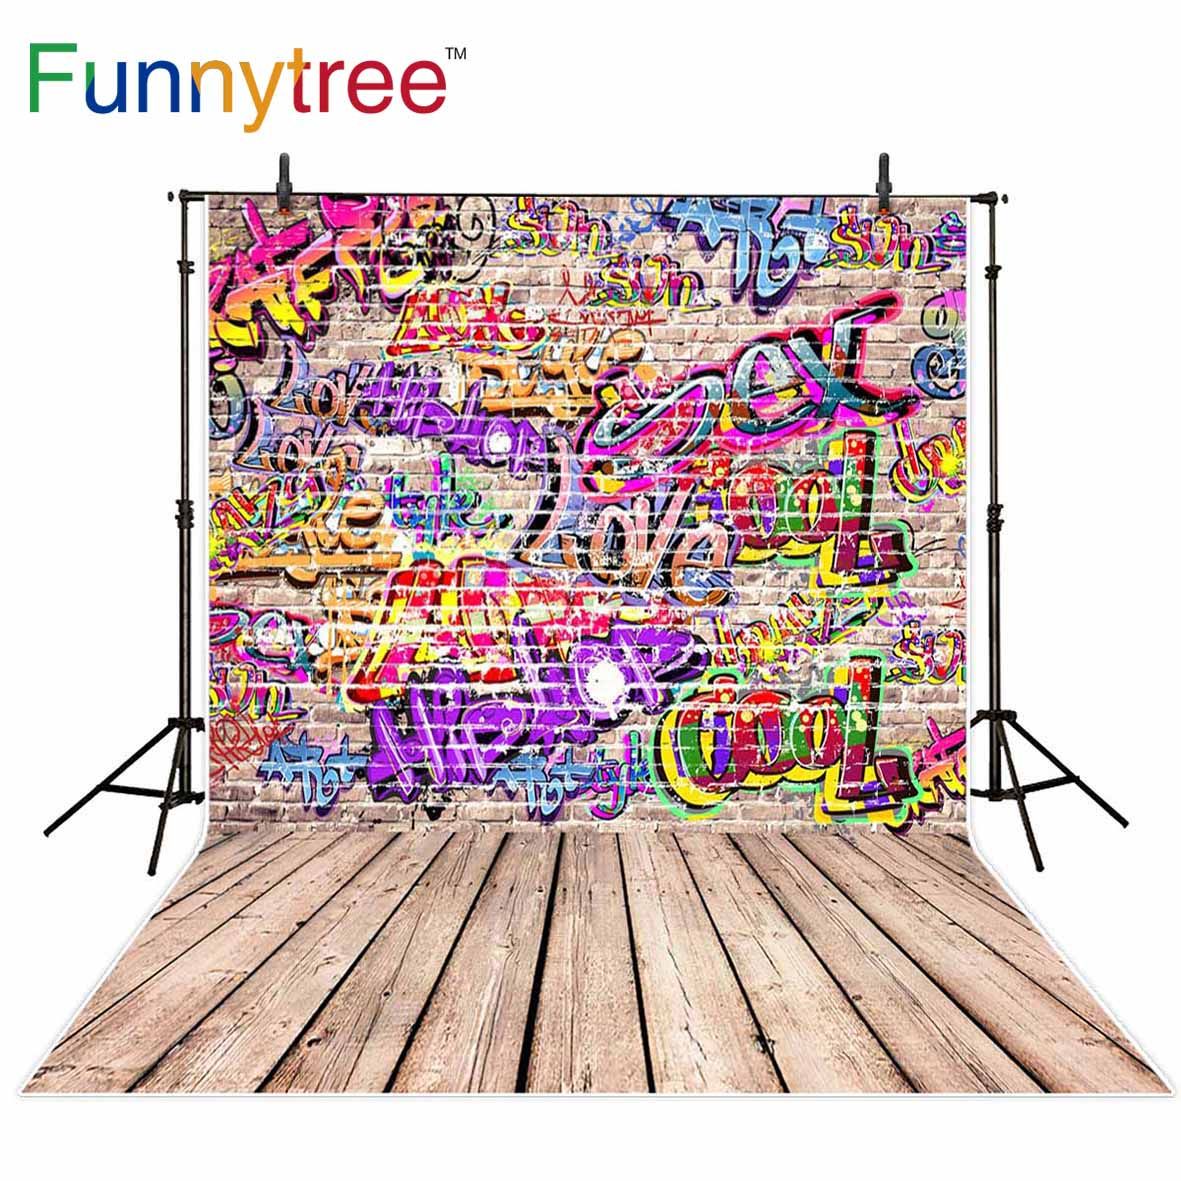 Funnytree backdrop for photographic studio Graffiti brick wall wood floor letter vintage professional background photobooth